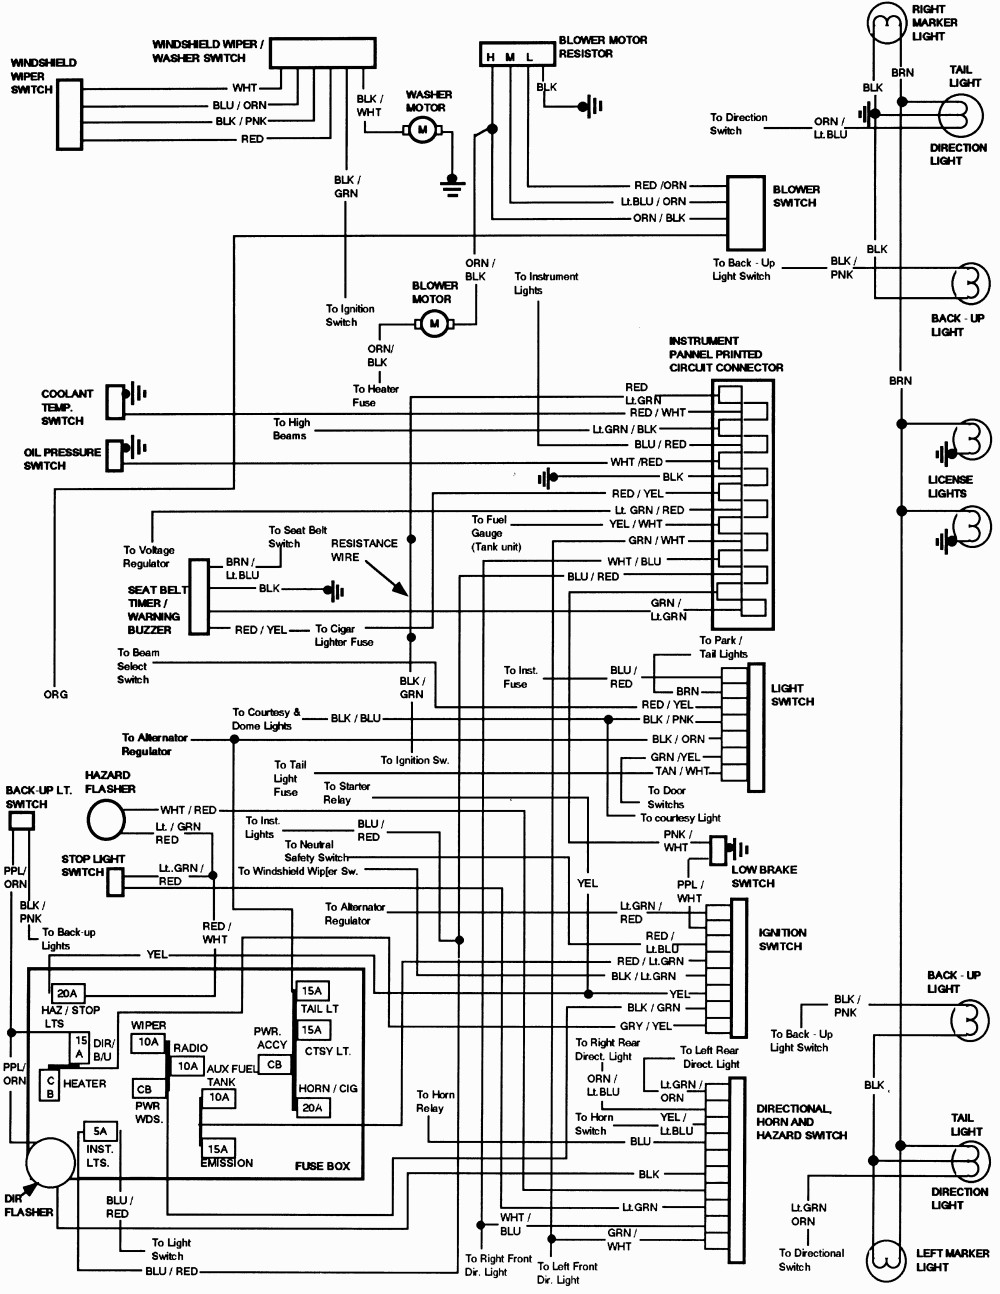 hight resolution of ford f 150 ignition switch diagram wiring diagram used 1977 ford f 150 ignition switch wiring diagram